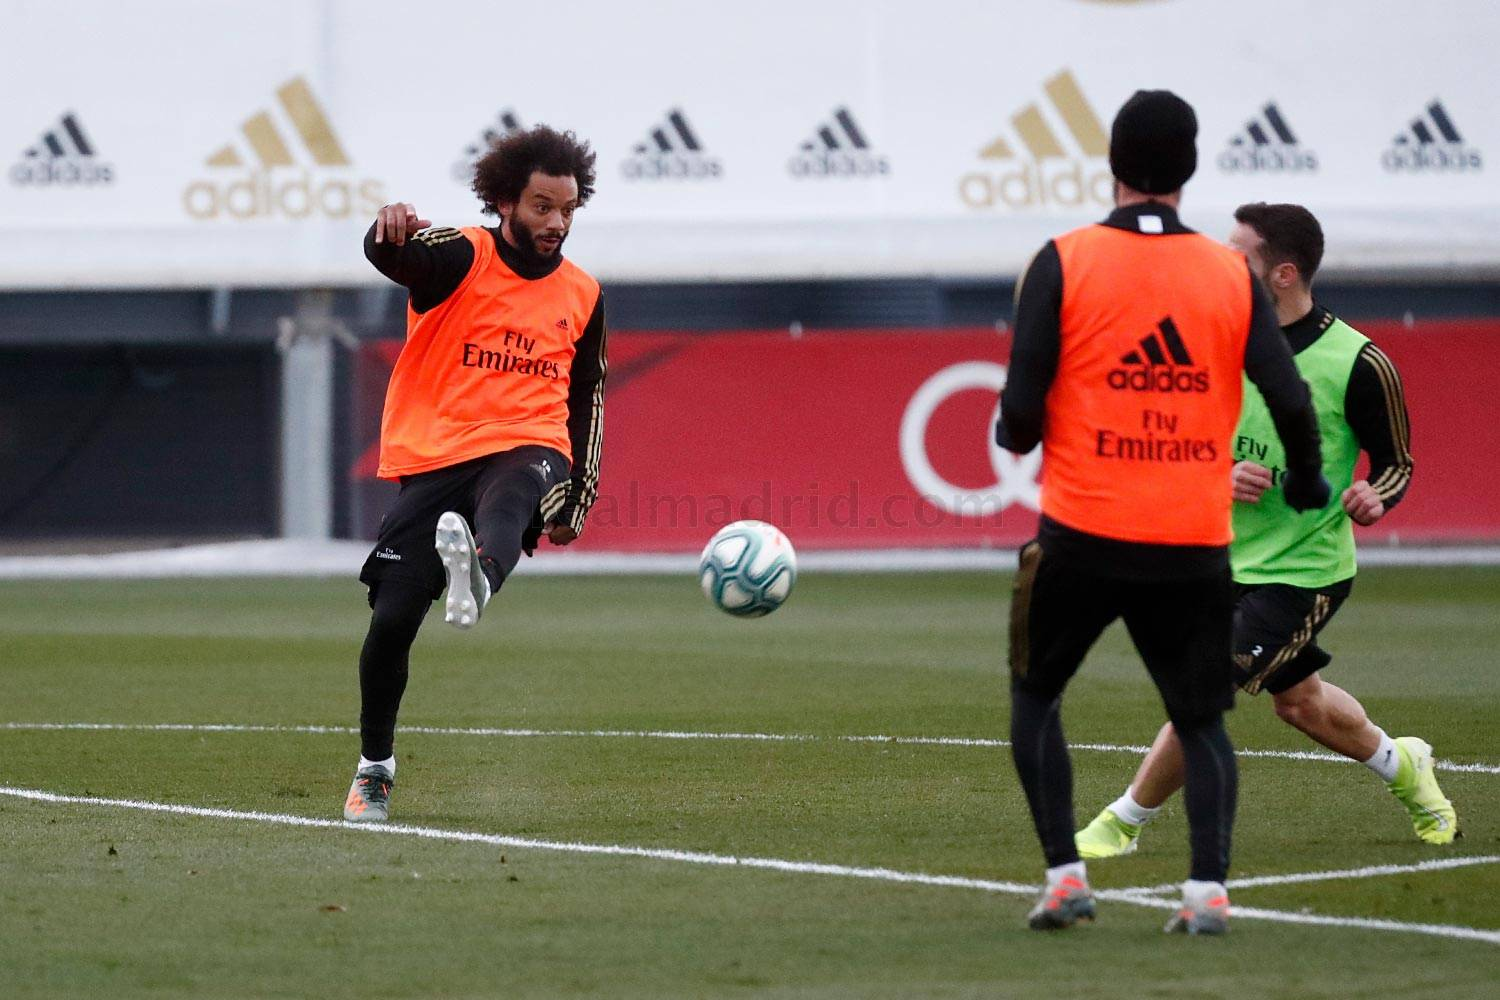 Real Madrid - Entrenamiento del Real Madrid  - 03-12-2019